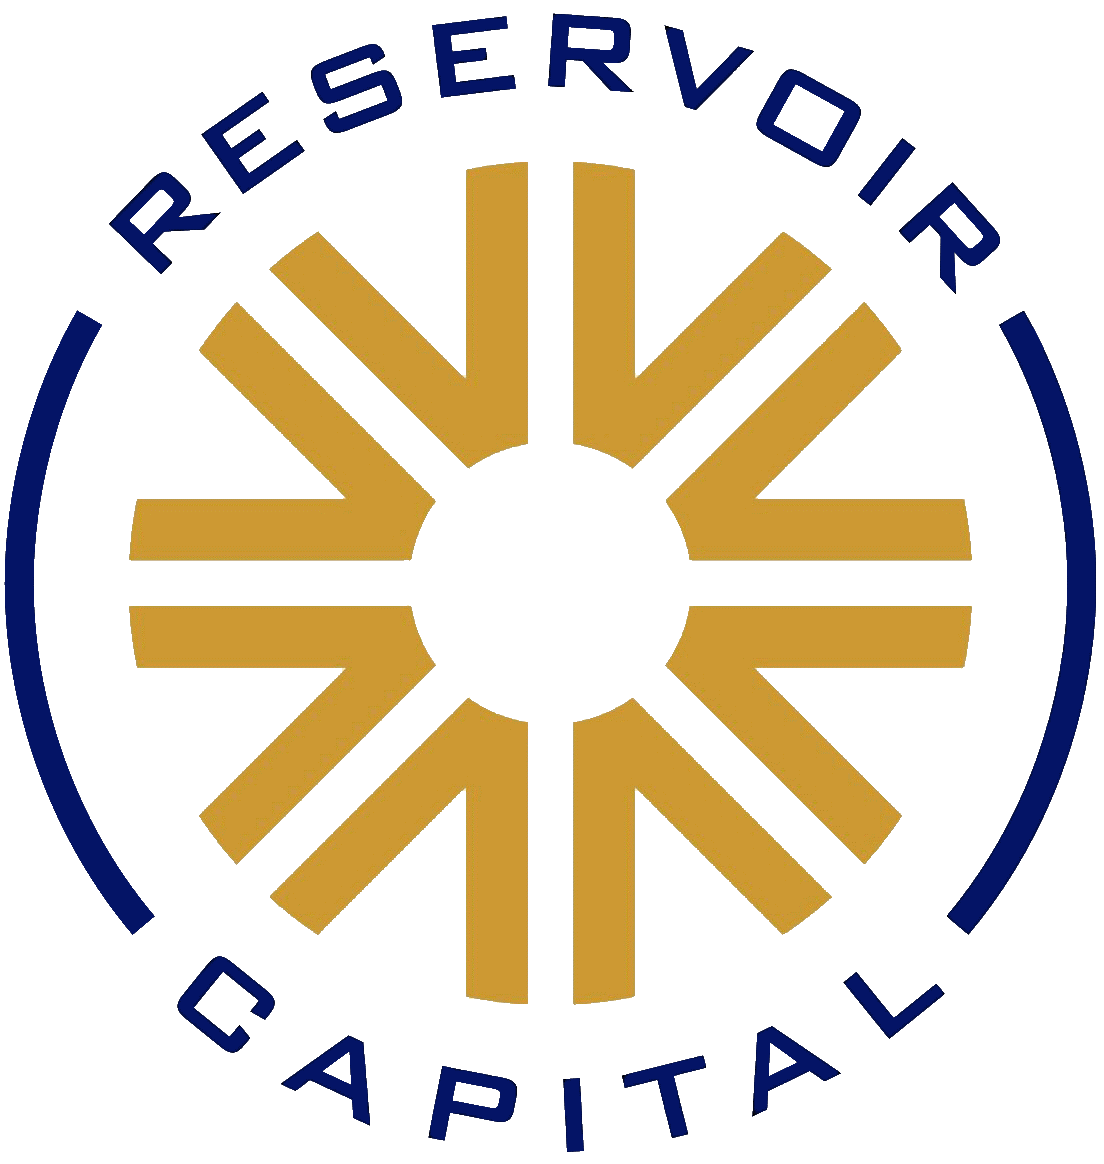 Reservoir Capital Corp. Enters into Agreement to Complete its acquisition of Olocorp Nigeria Ltd adding 3.7MW Net Operating Capacity to REO to Reach 46